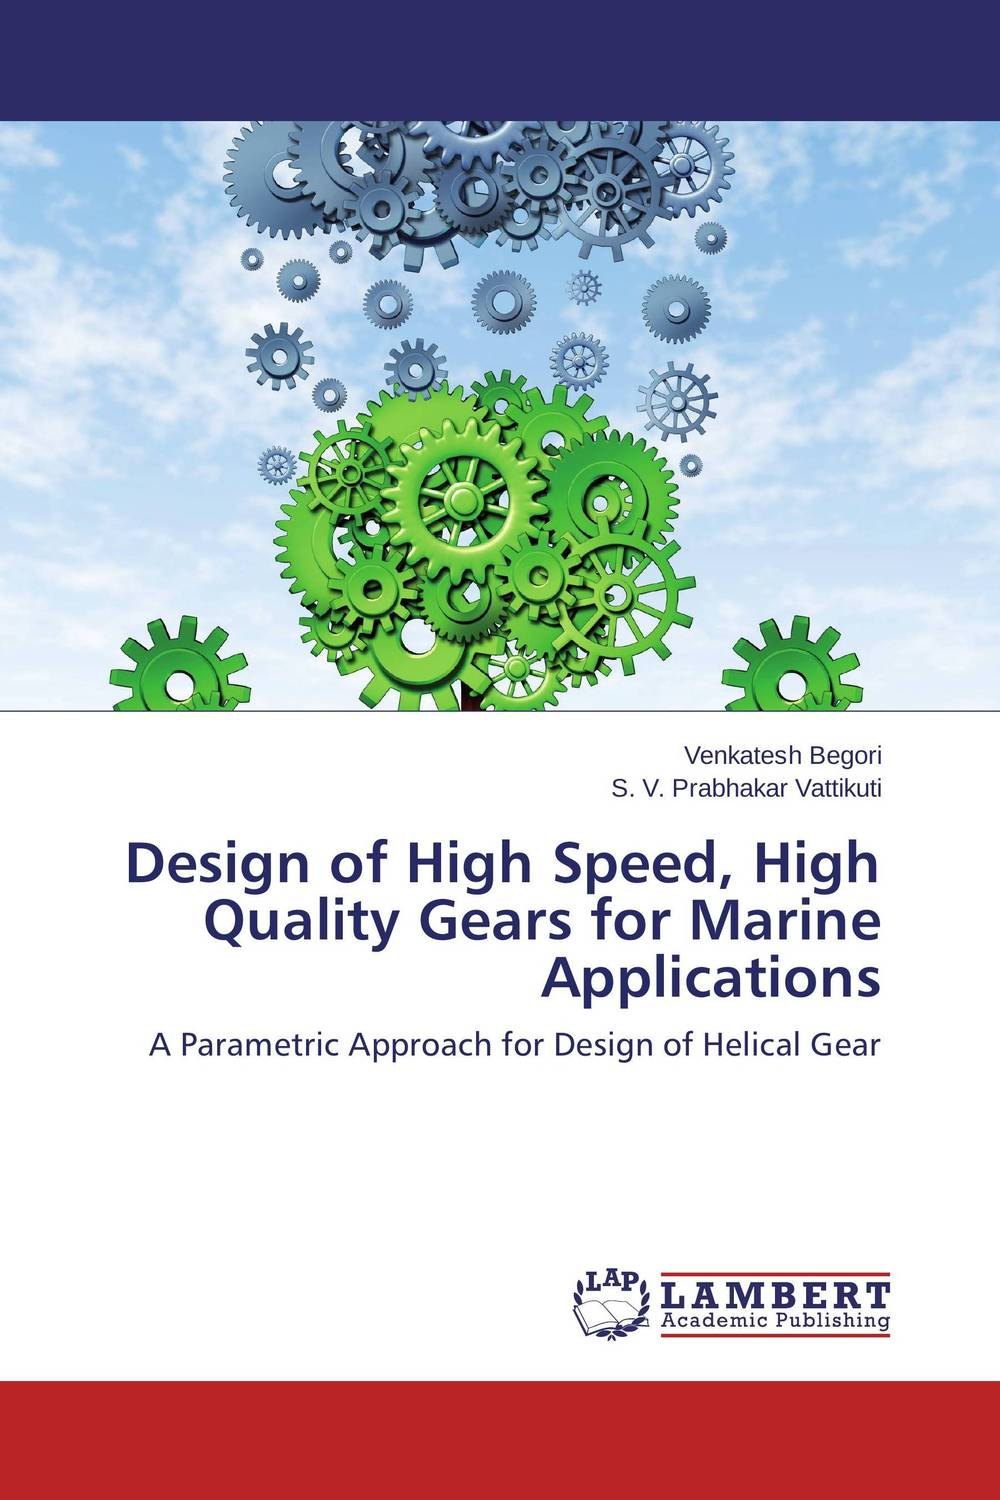 Design of High Speed, High Quality Gears for Marine Applications need for speed rivals